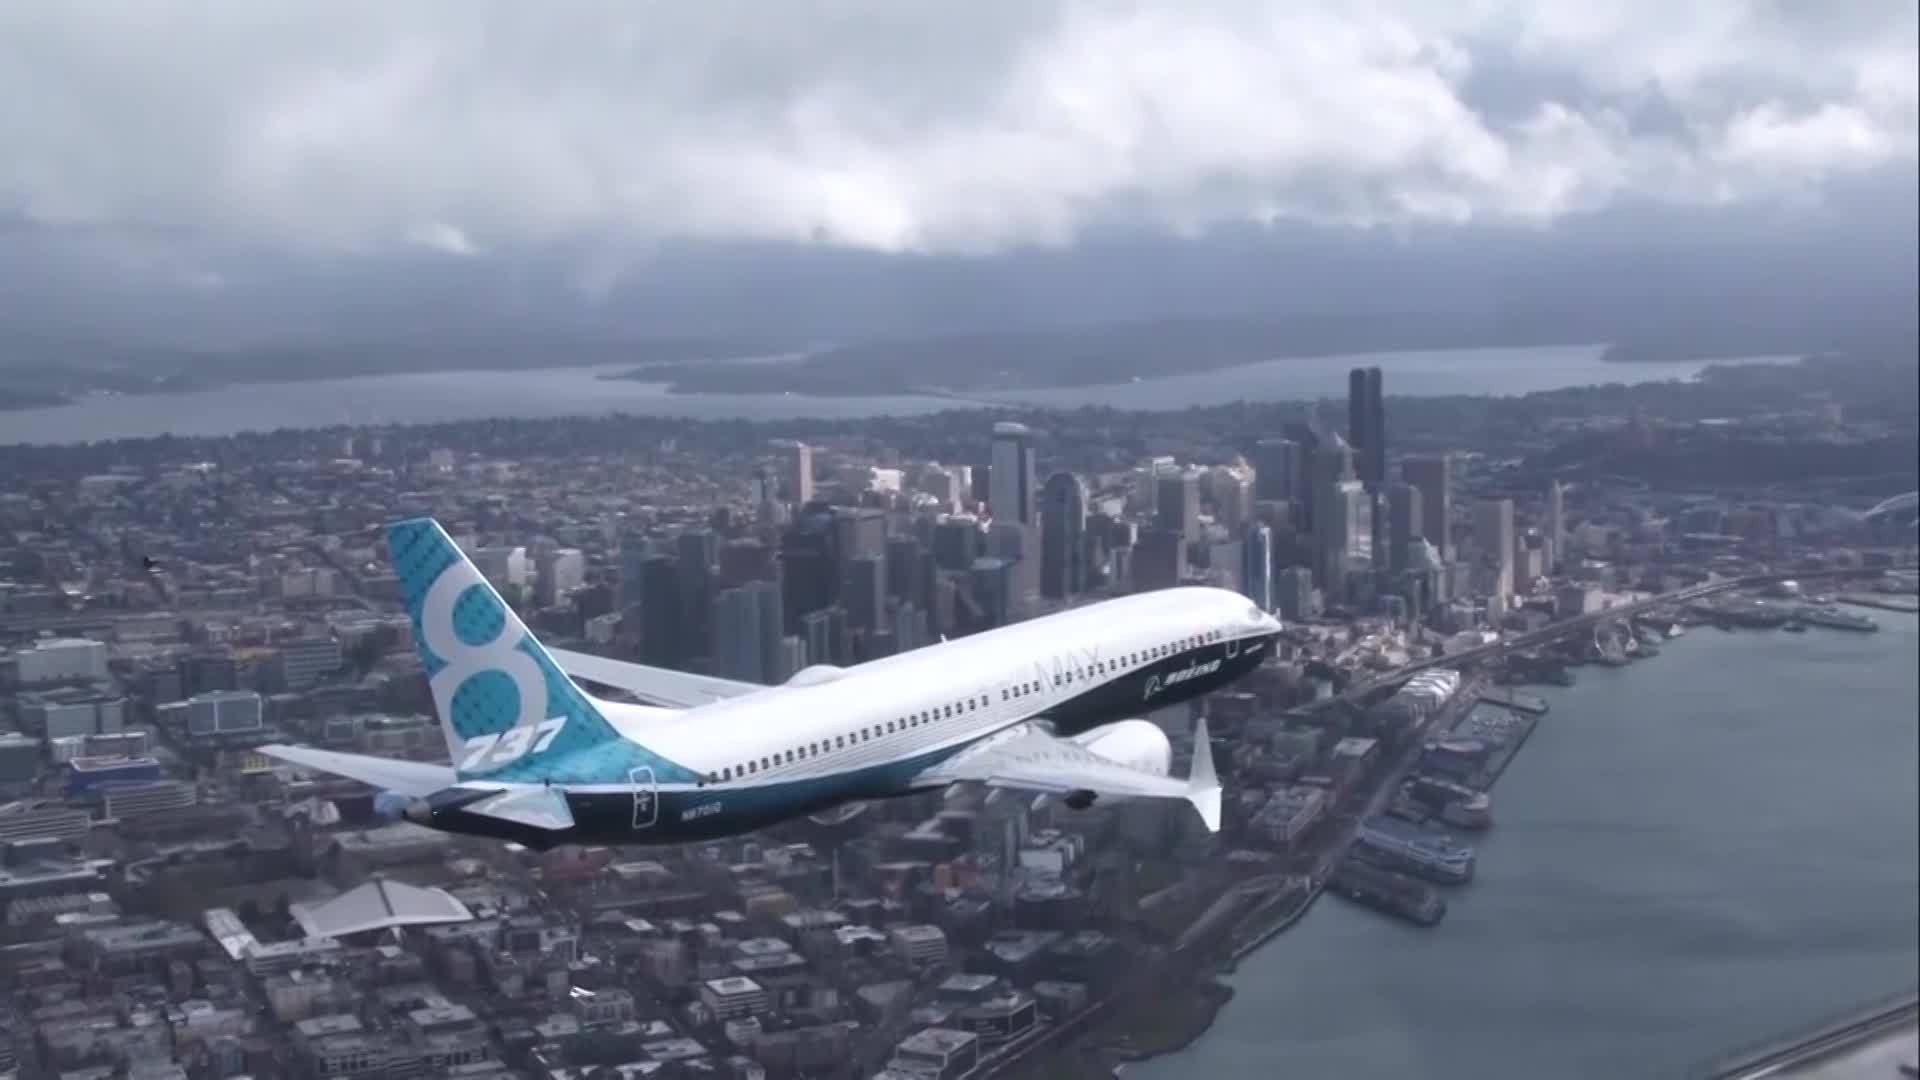 Boeing_s_CEO_faces_questions_over_737_Ma_3_20190429214850